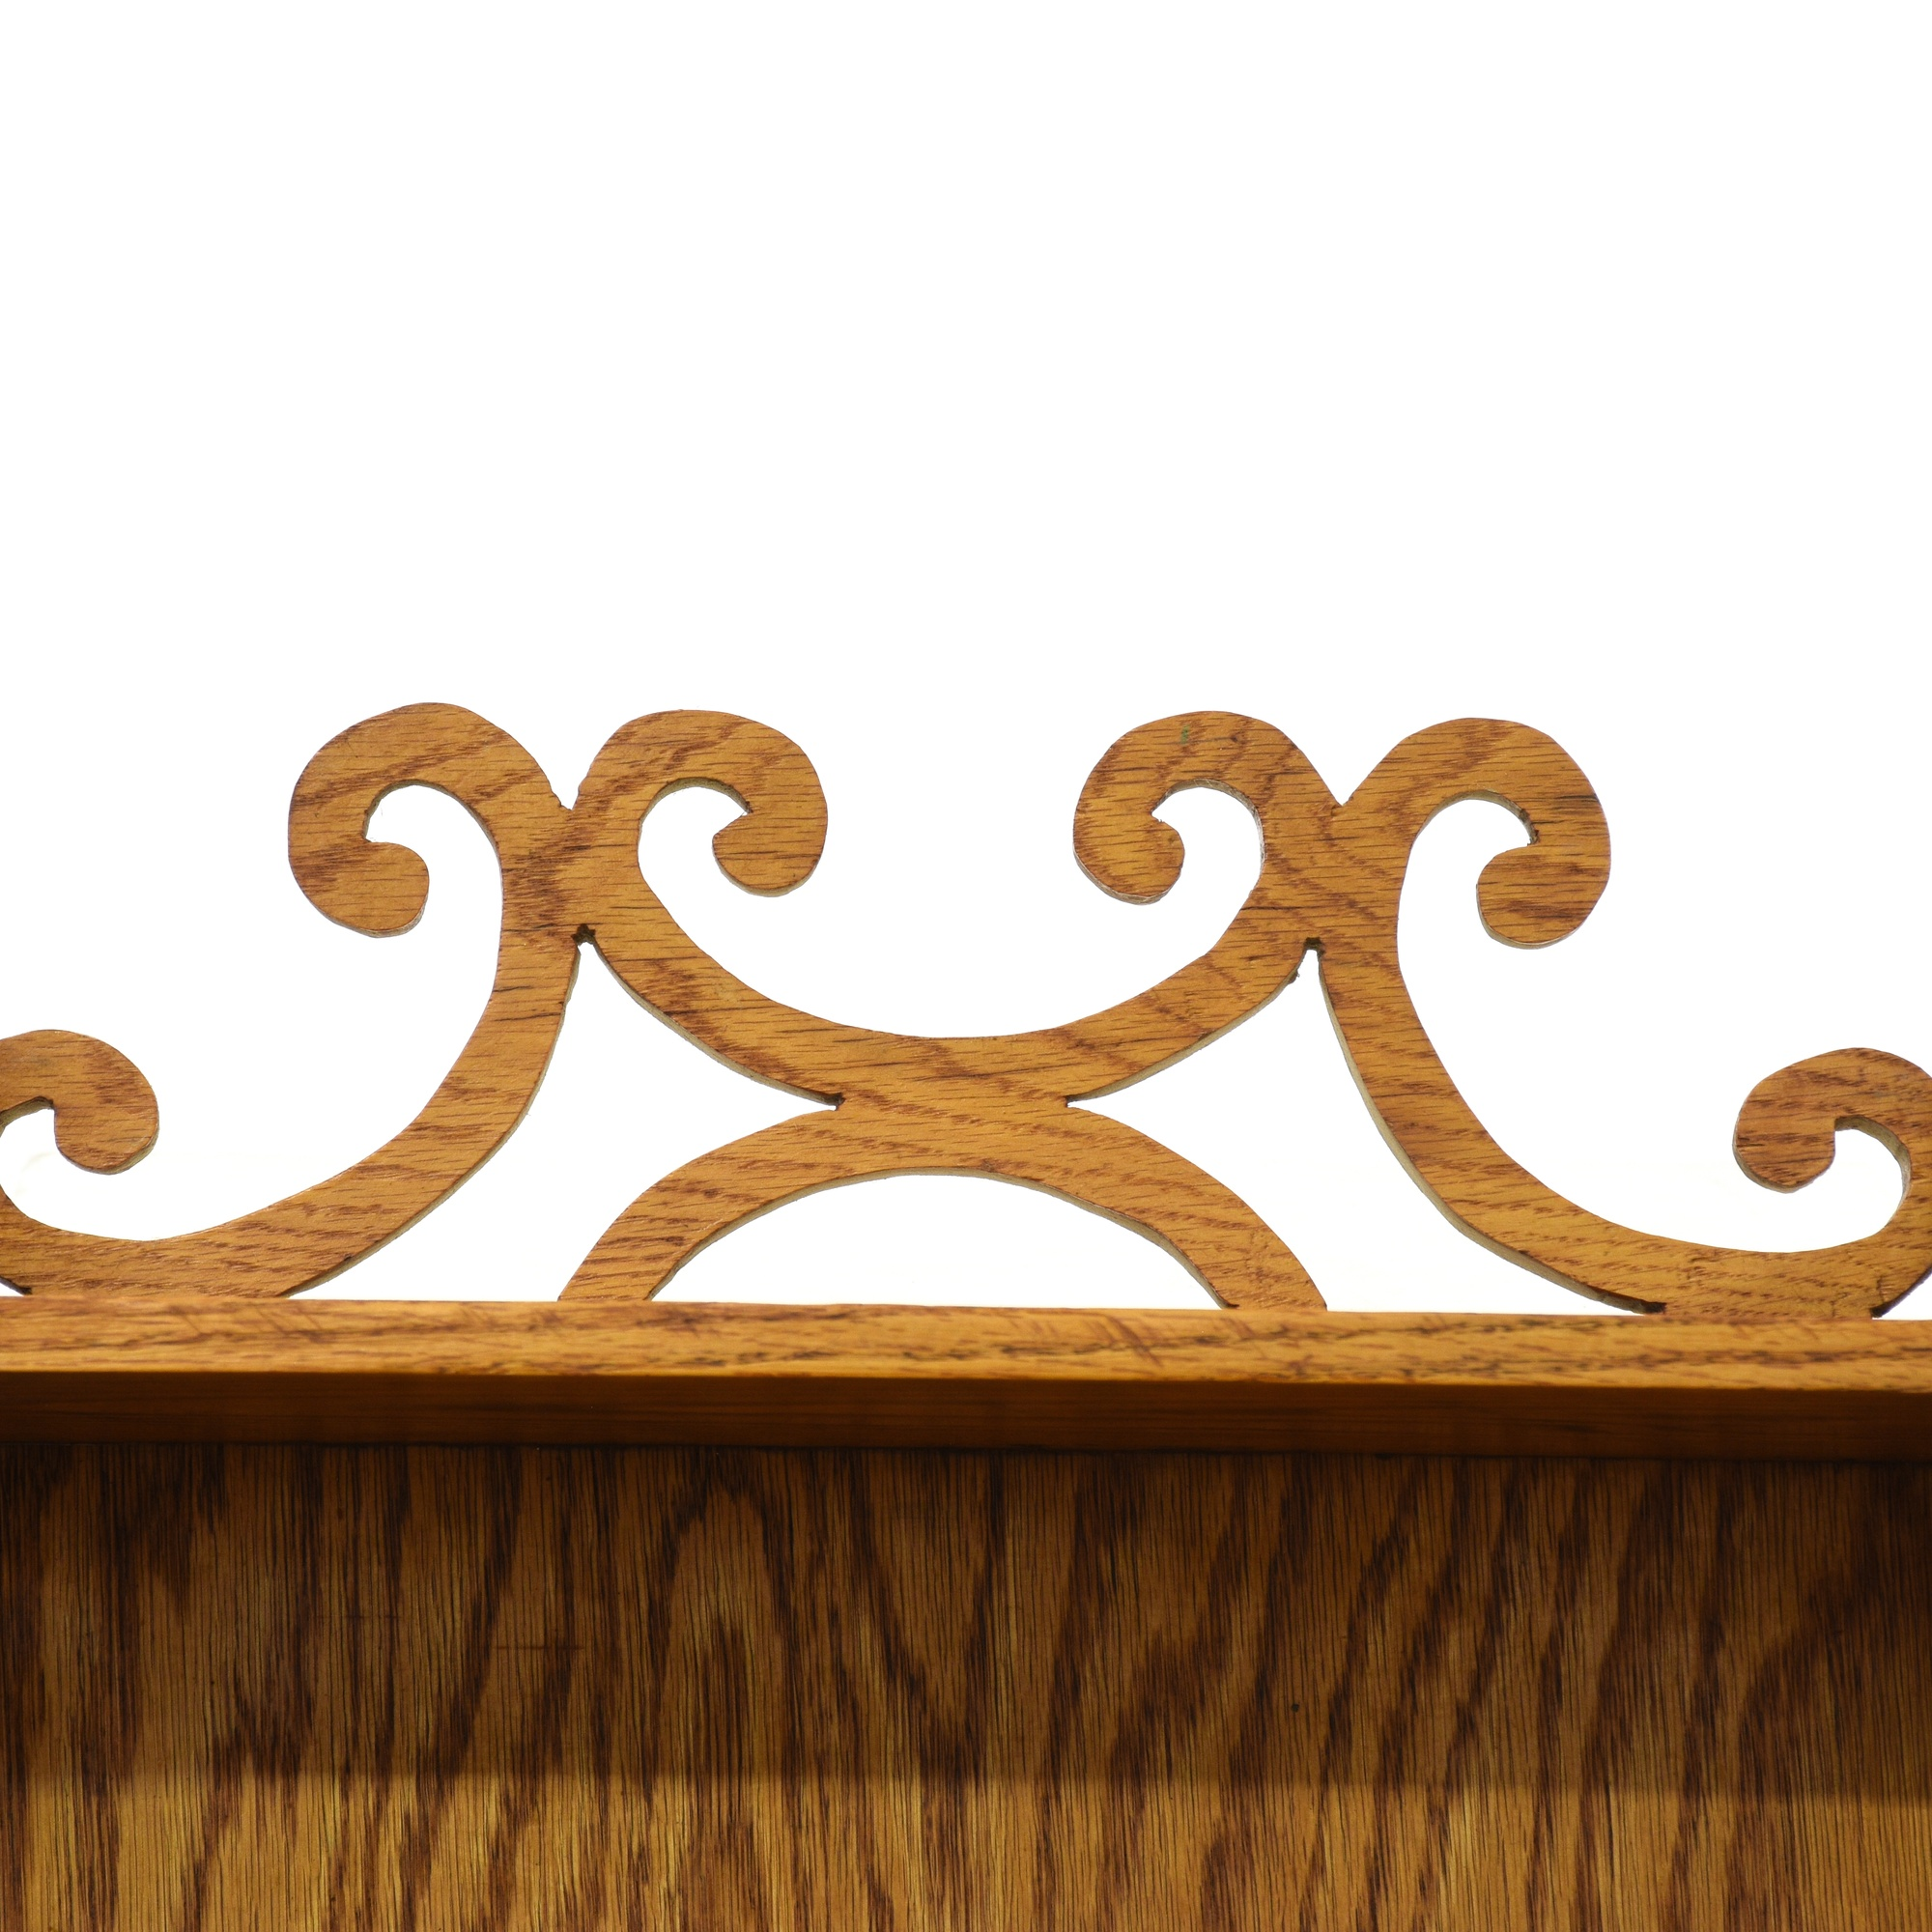 Carved Oak Swirl Hanging Wall Shelf  Loveseat Vintage. Decorative Return Air Grille. Hotel Suite With Jacuzzi In Room. Wall Shelves Decor. Silver Bedroom Decor. Decorative Window Pane Mirrors. Rust Colored Decorative Pillows. 5 Piece Dining Room Set. Southwestern Style Home Decor